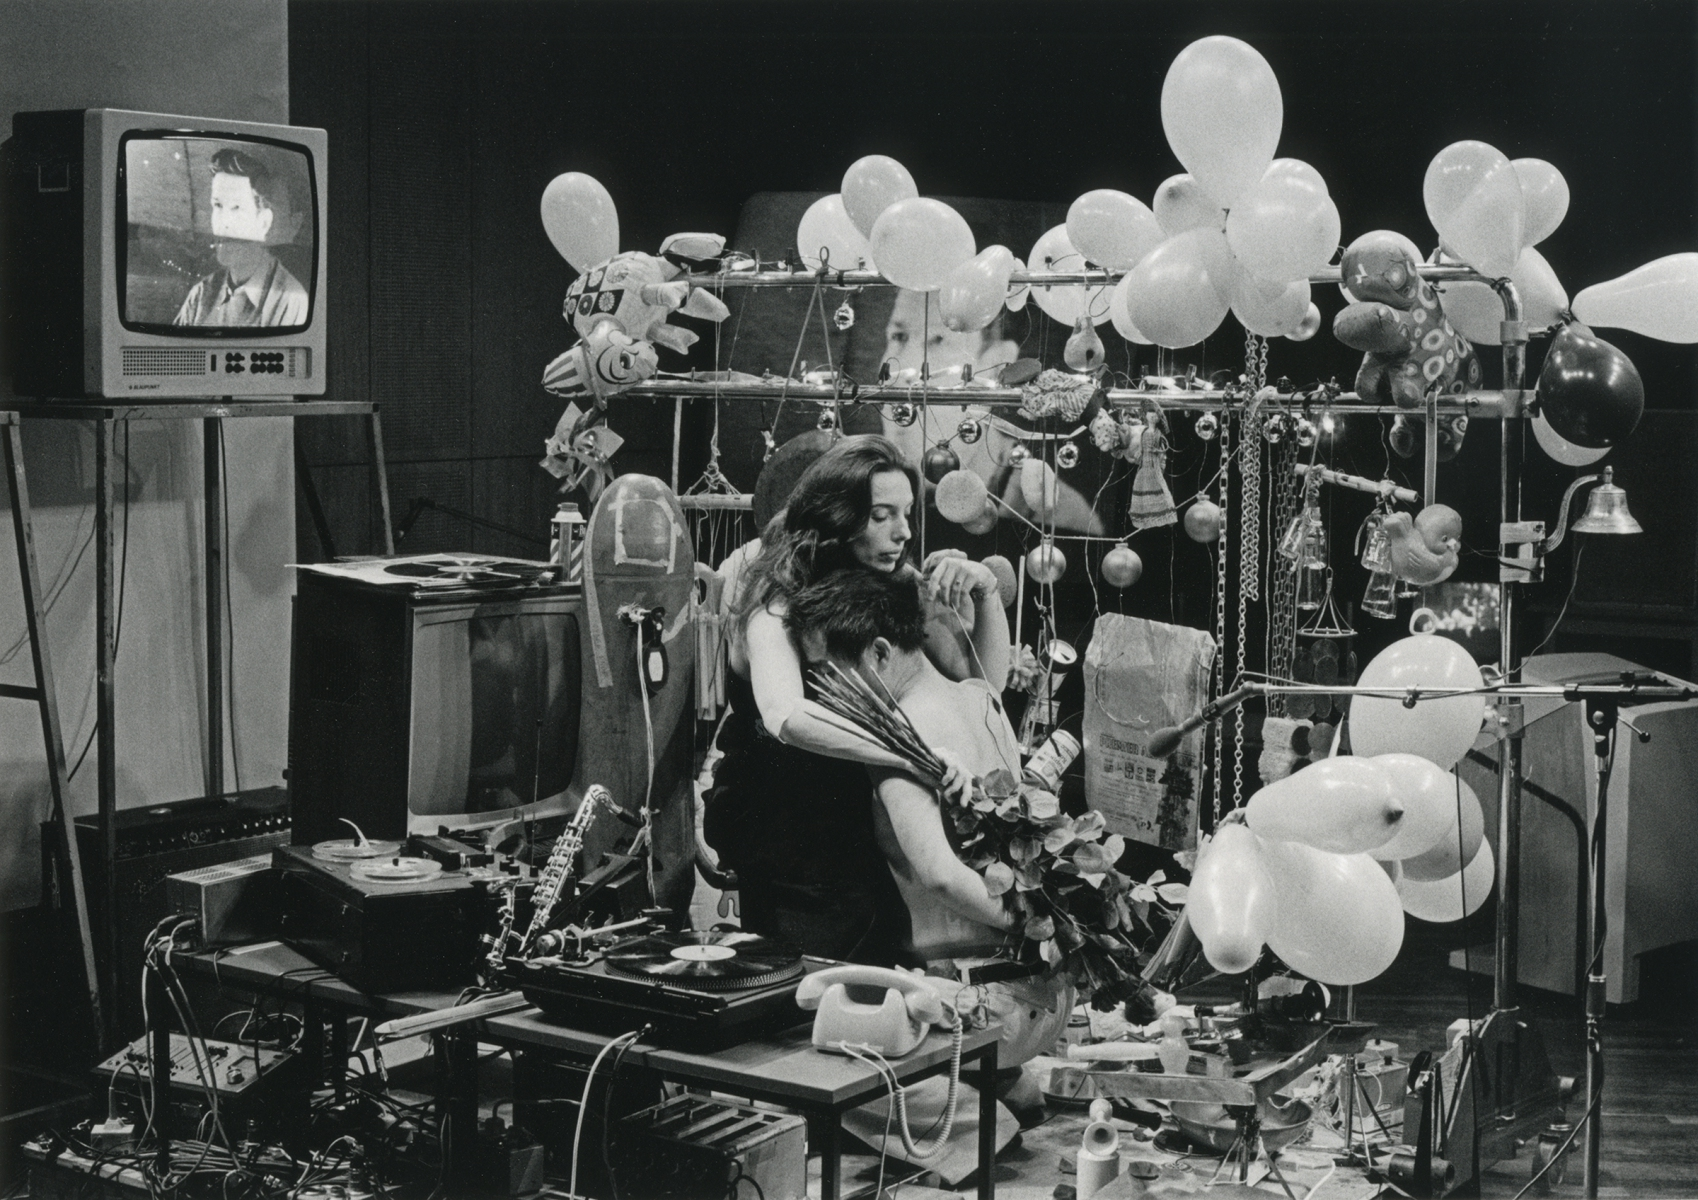 """Klaus Barisch, 26'1.1499"""" for a String Player, soiree Paik-Moorman, WDR Funkhaus, Cologne (1980)"""